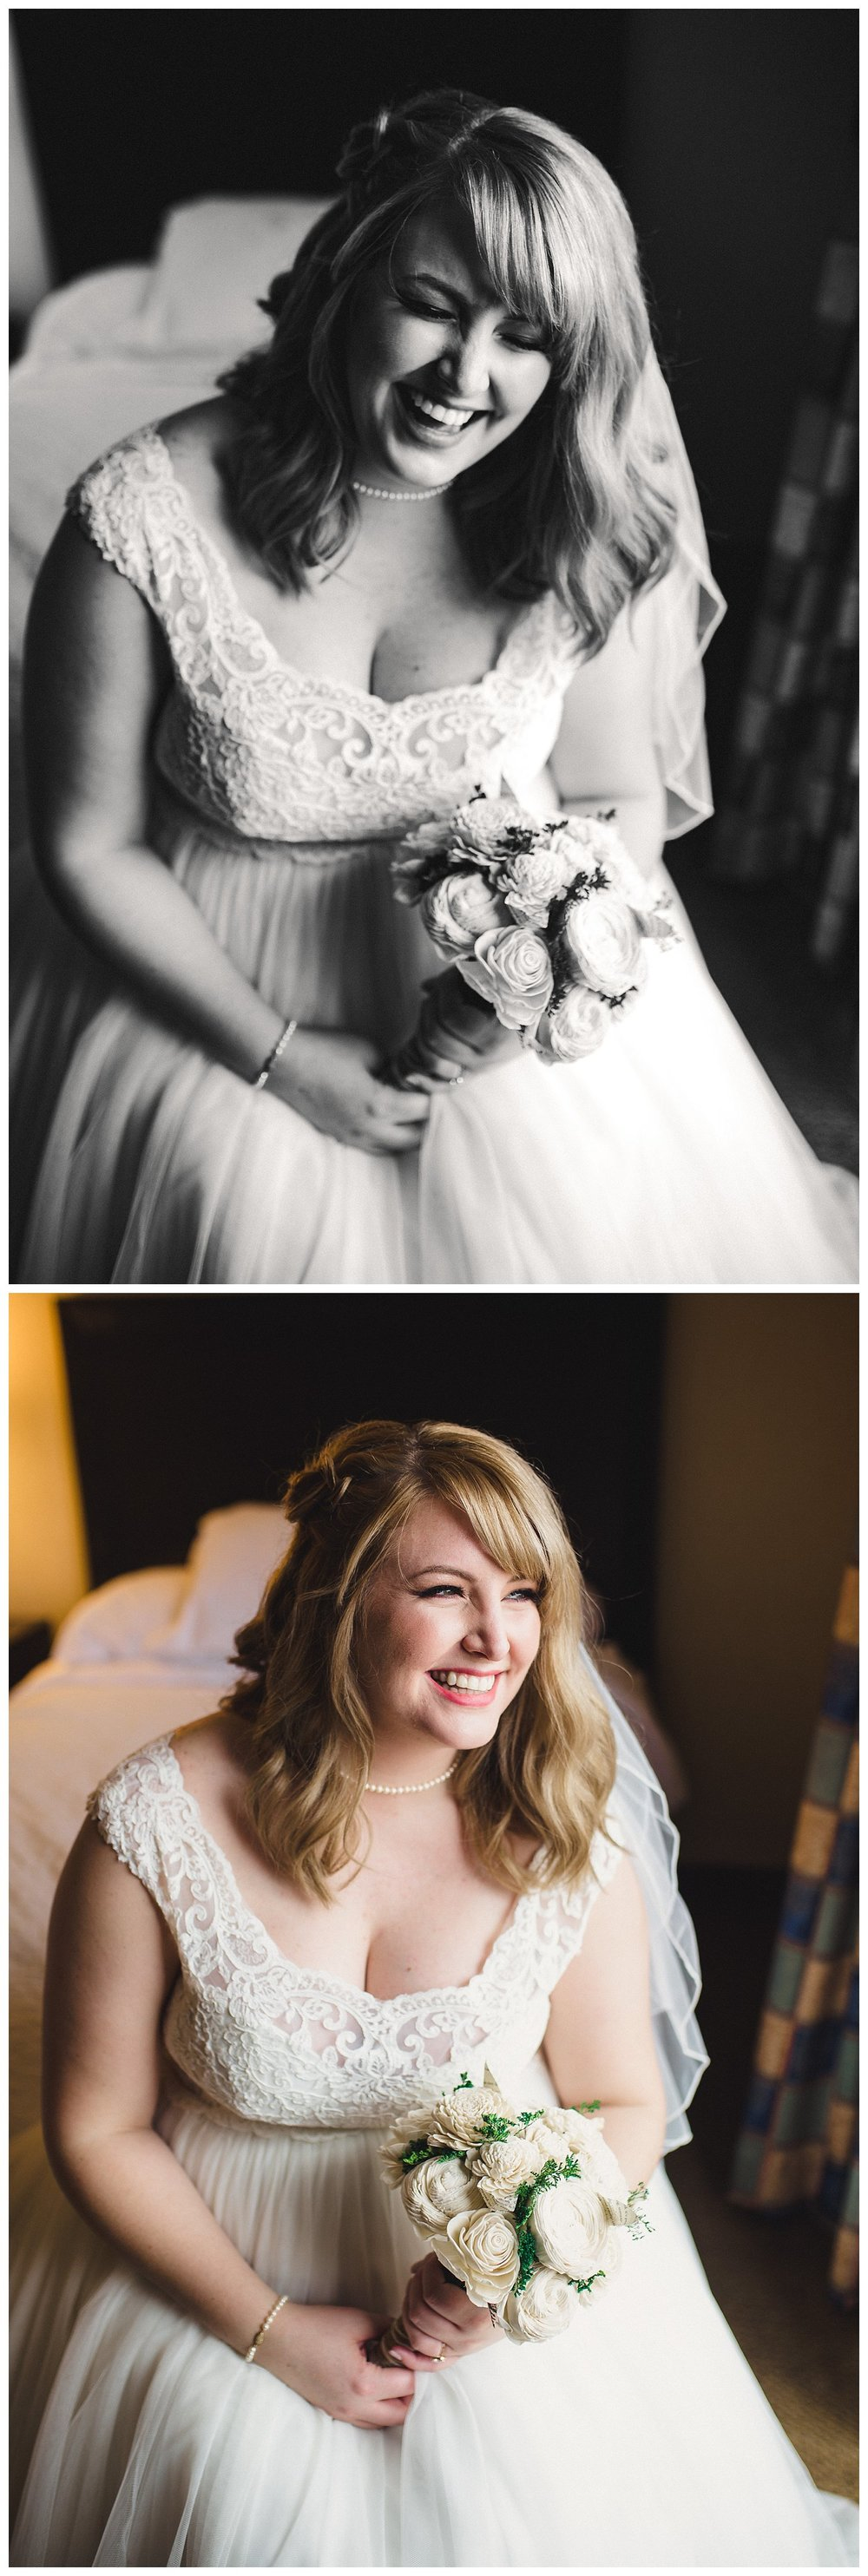 Kelsey_Diane_Photography_Loose_Mansion_Wedding_Photography_Kansas_City_Victor_Lyndsay_0318.jpg